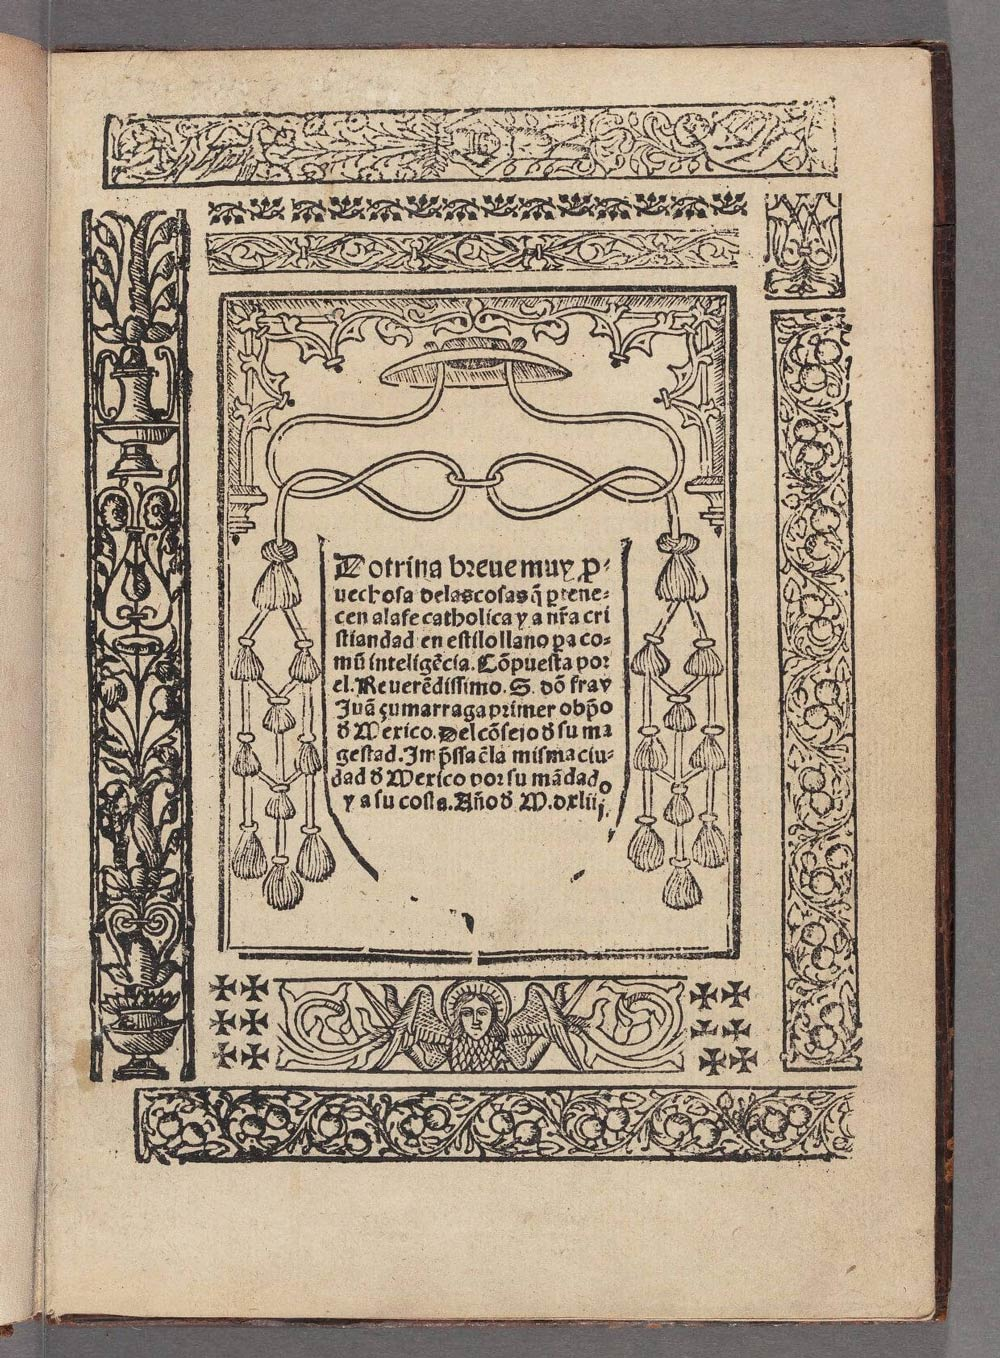 Doctrina breve, edition of 1544, printed in Mexico City. Image from Houghton Library, Uni of Harvard.